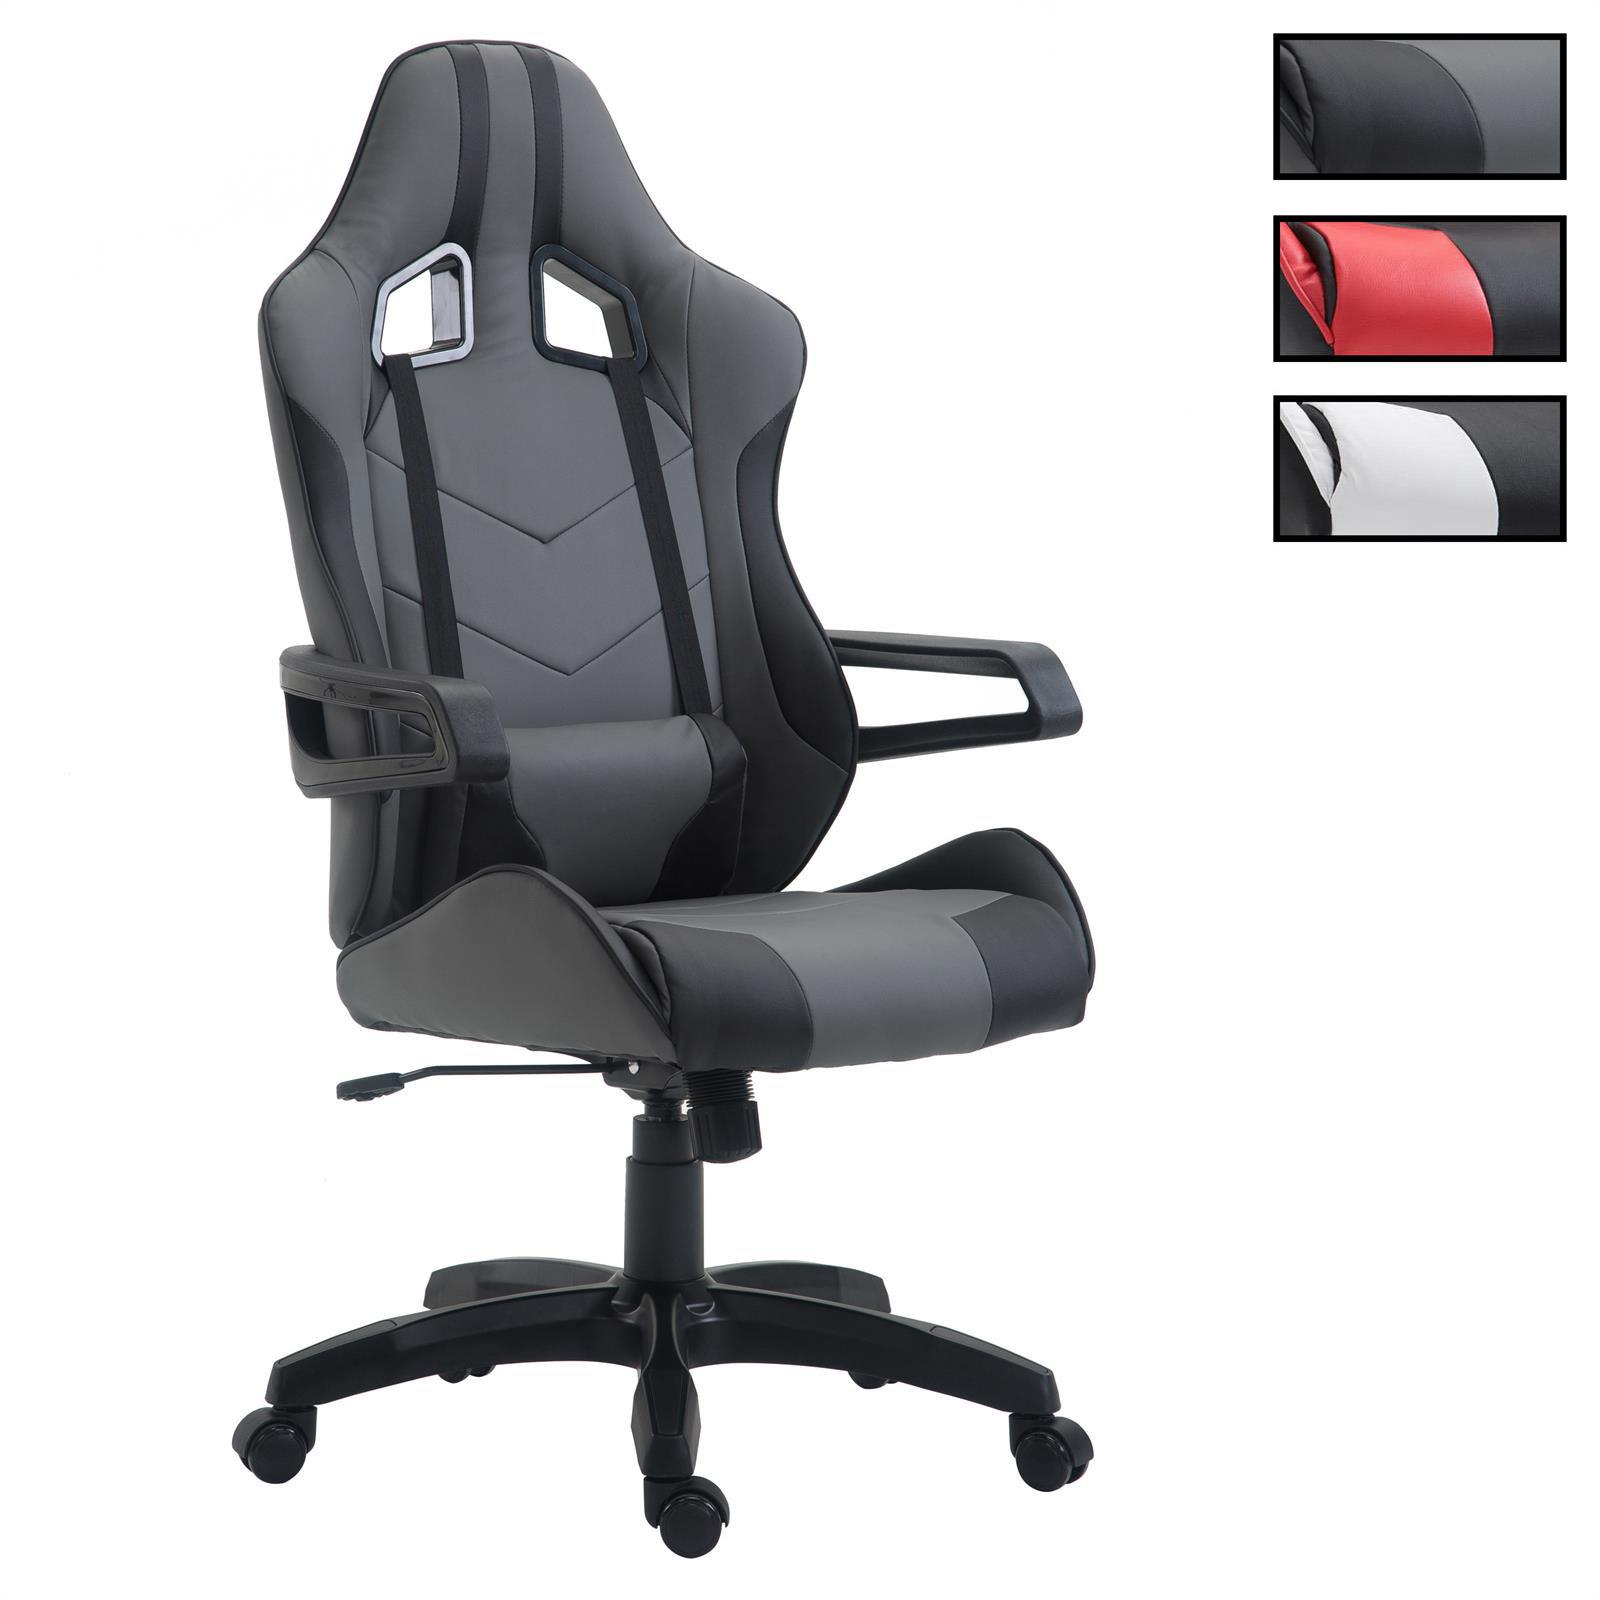 fauteuil de bureau gaming play mobil meubles. Black Bedroom Furniture Sets. Home Design Ideas